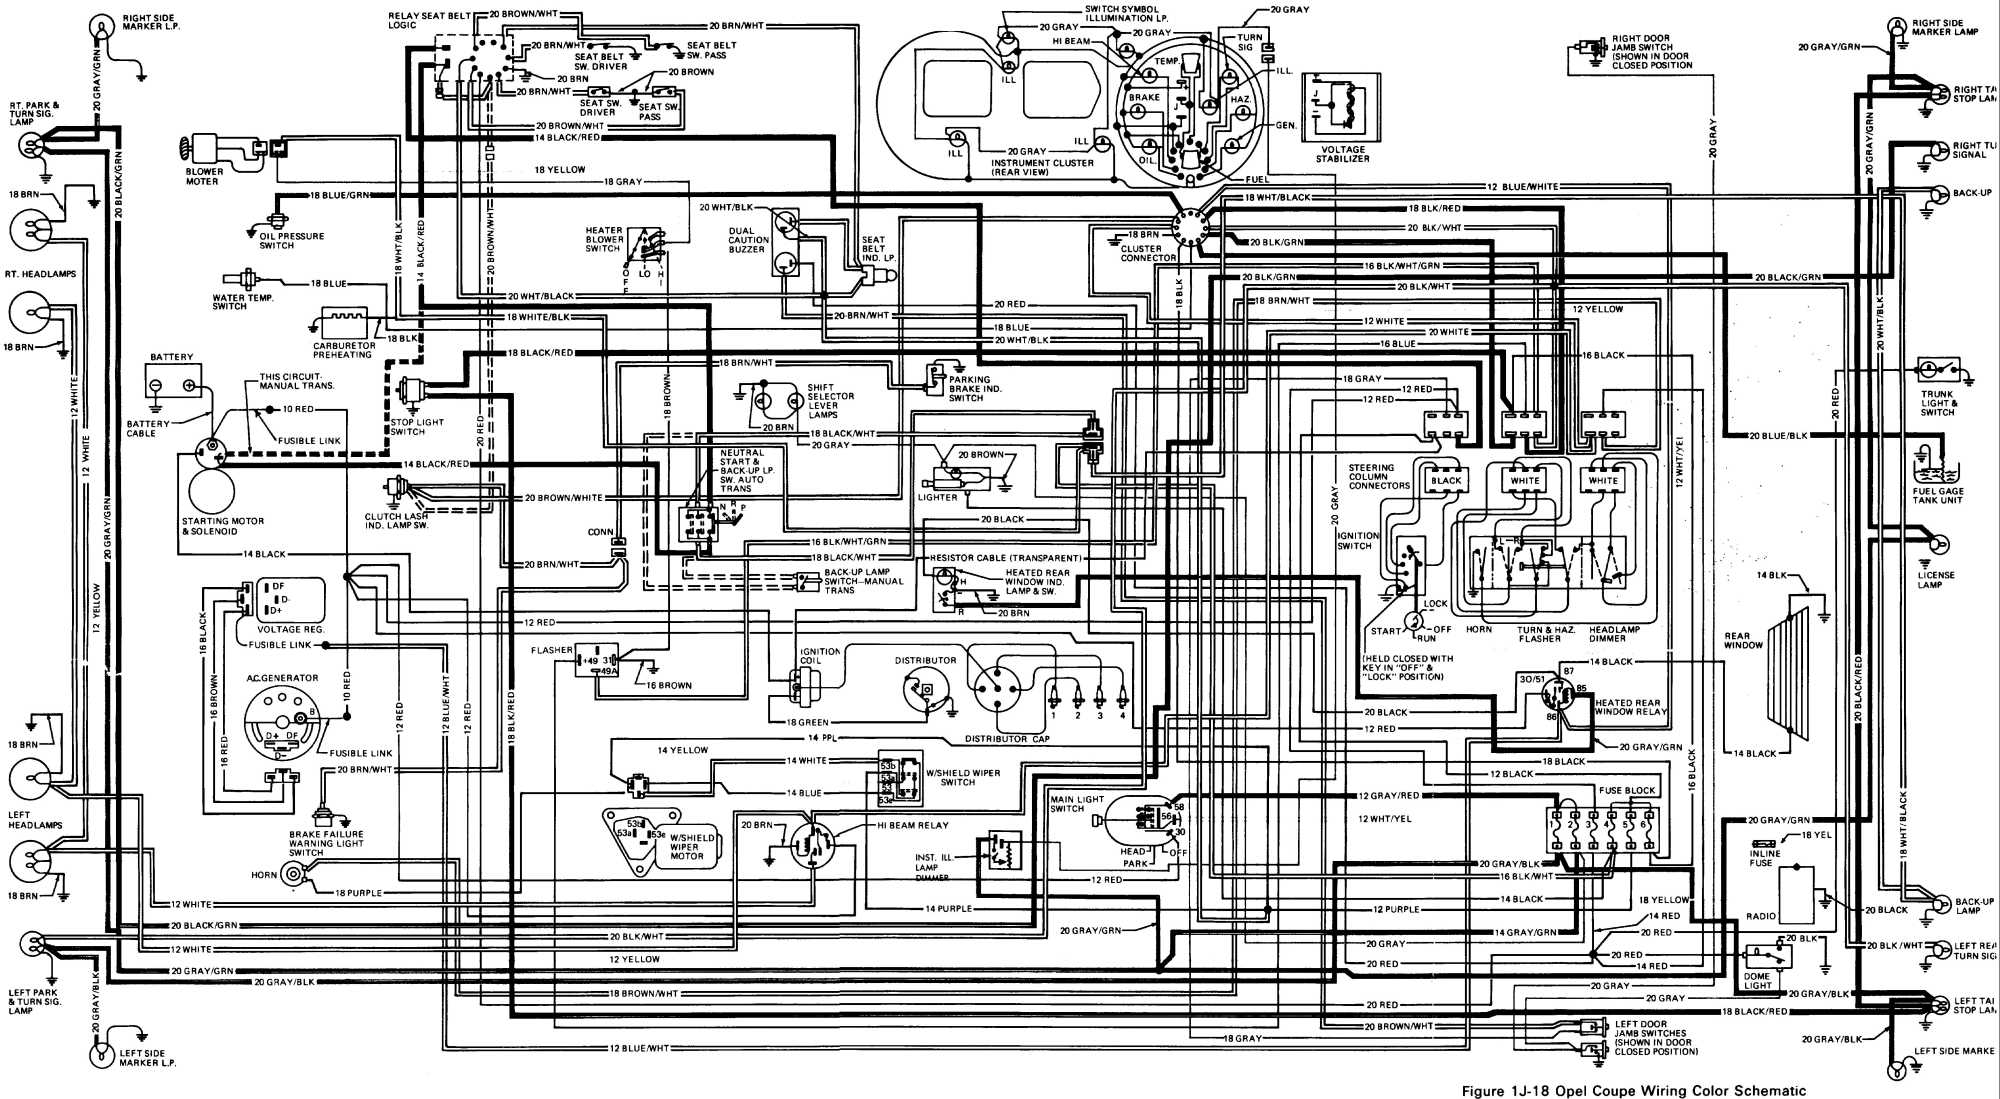 Opel Frontera B Wiring Diagram Diagrams Rj45 Gt Free Engine Image For User Manual Connector